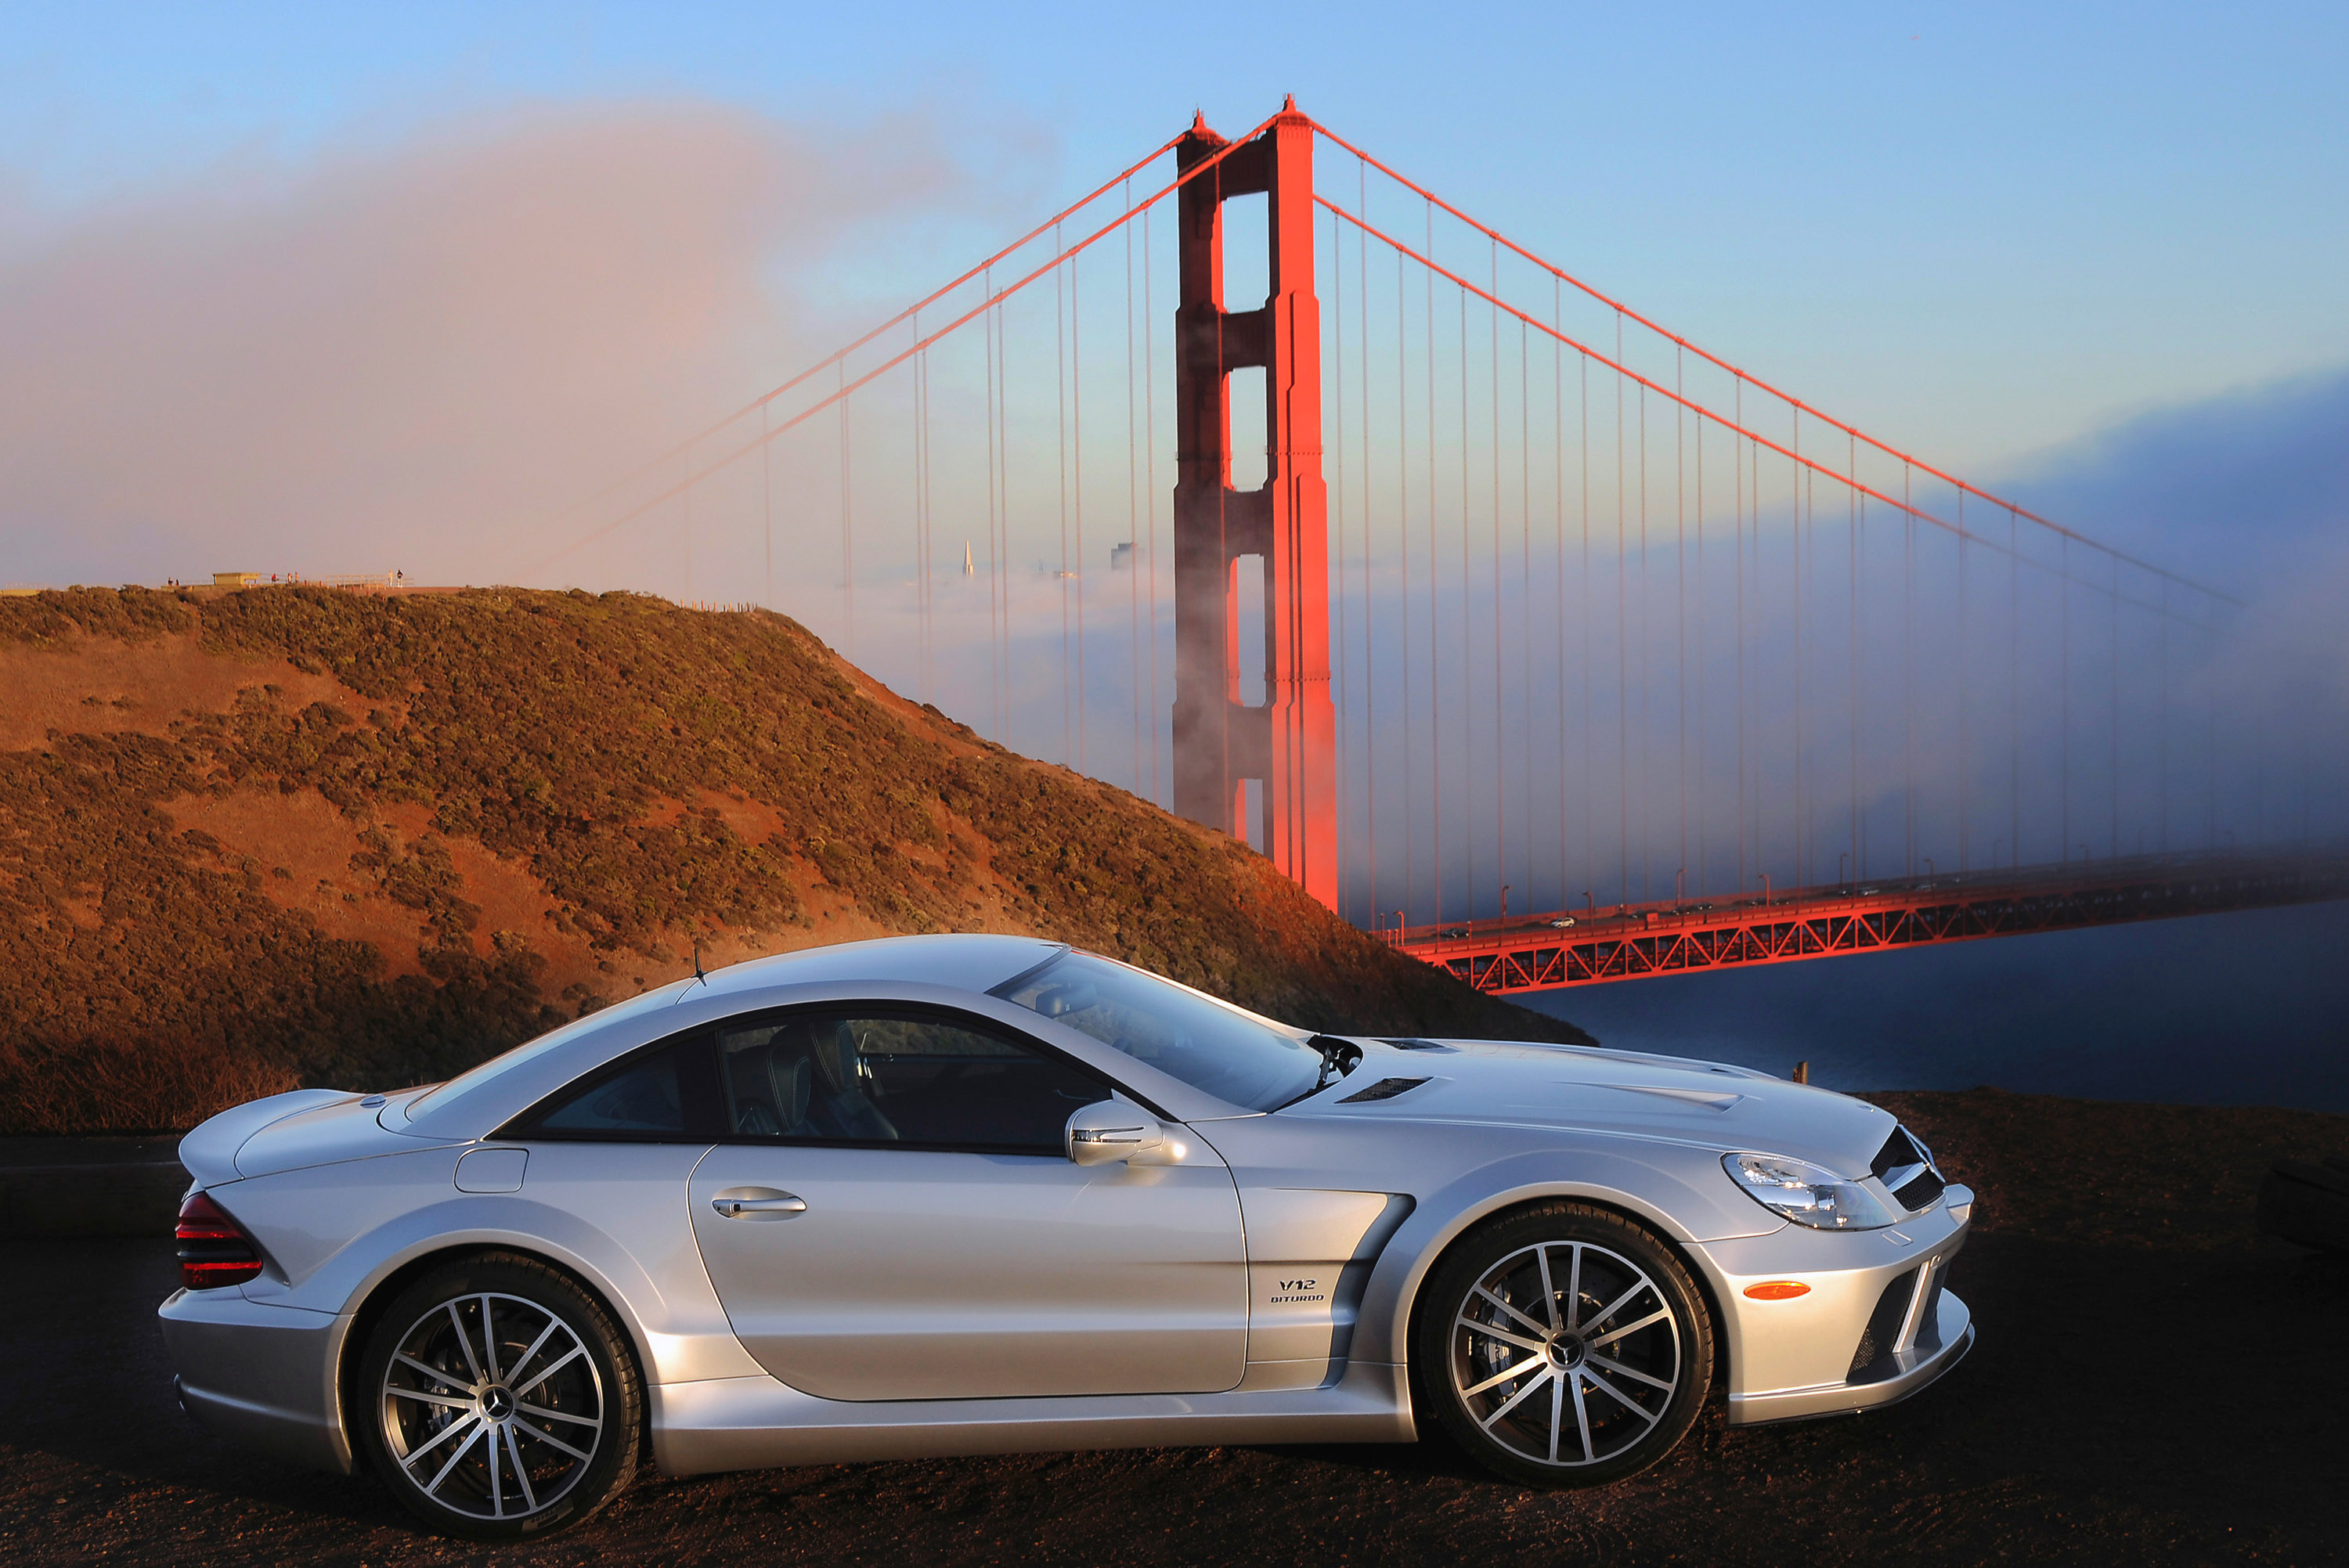 Mercedes sl 65 amg black series vs bmw m6 f12 and porsche for A series mercedes benz